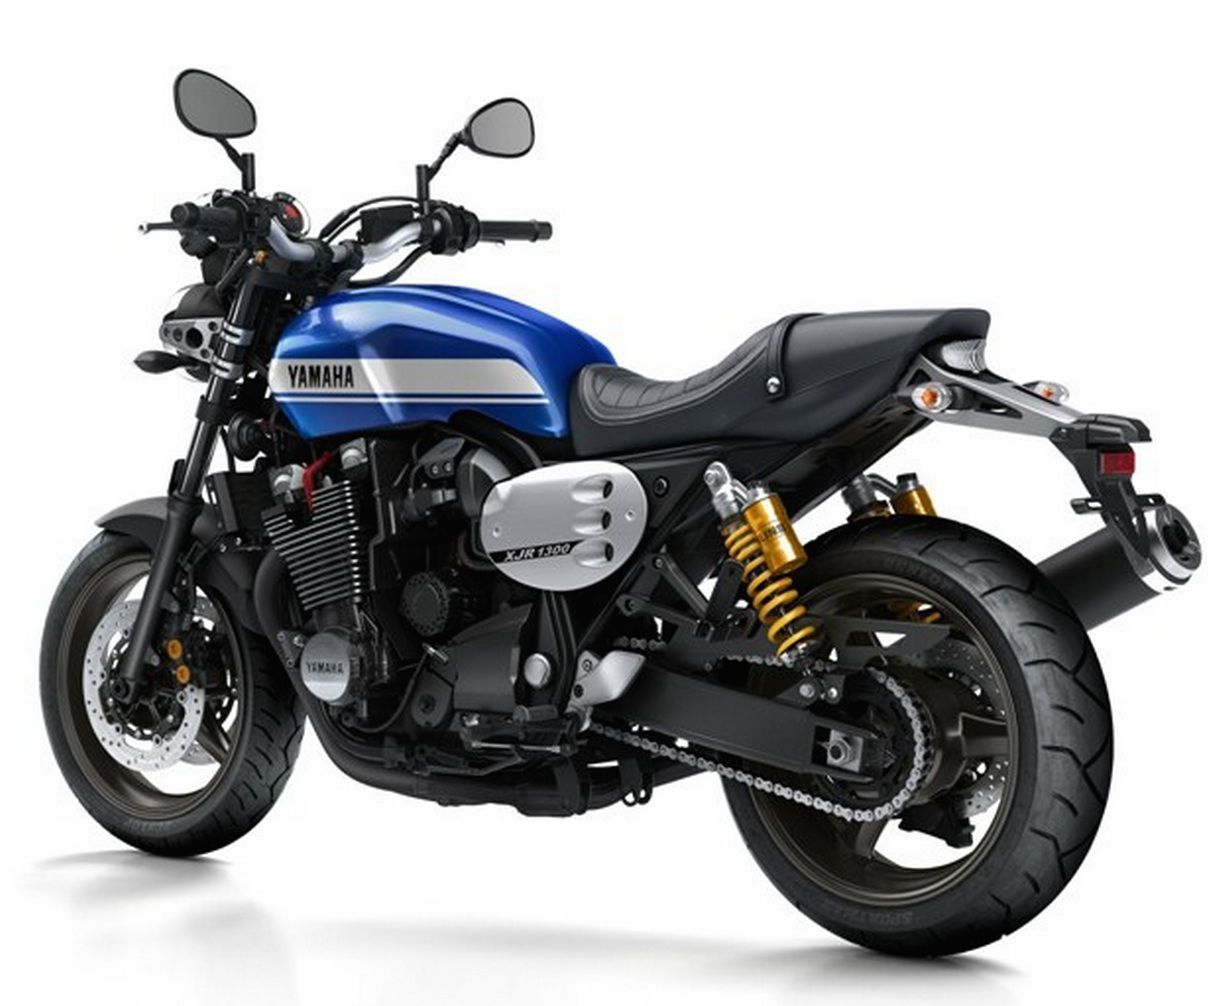 Yamaha has unveiled the MT07 Moto Cage and restyled